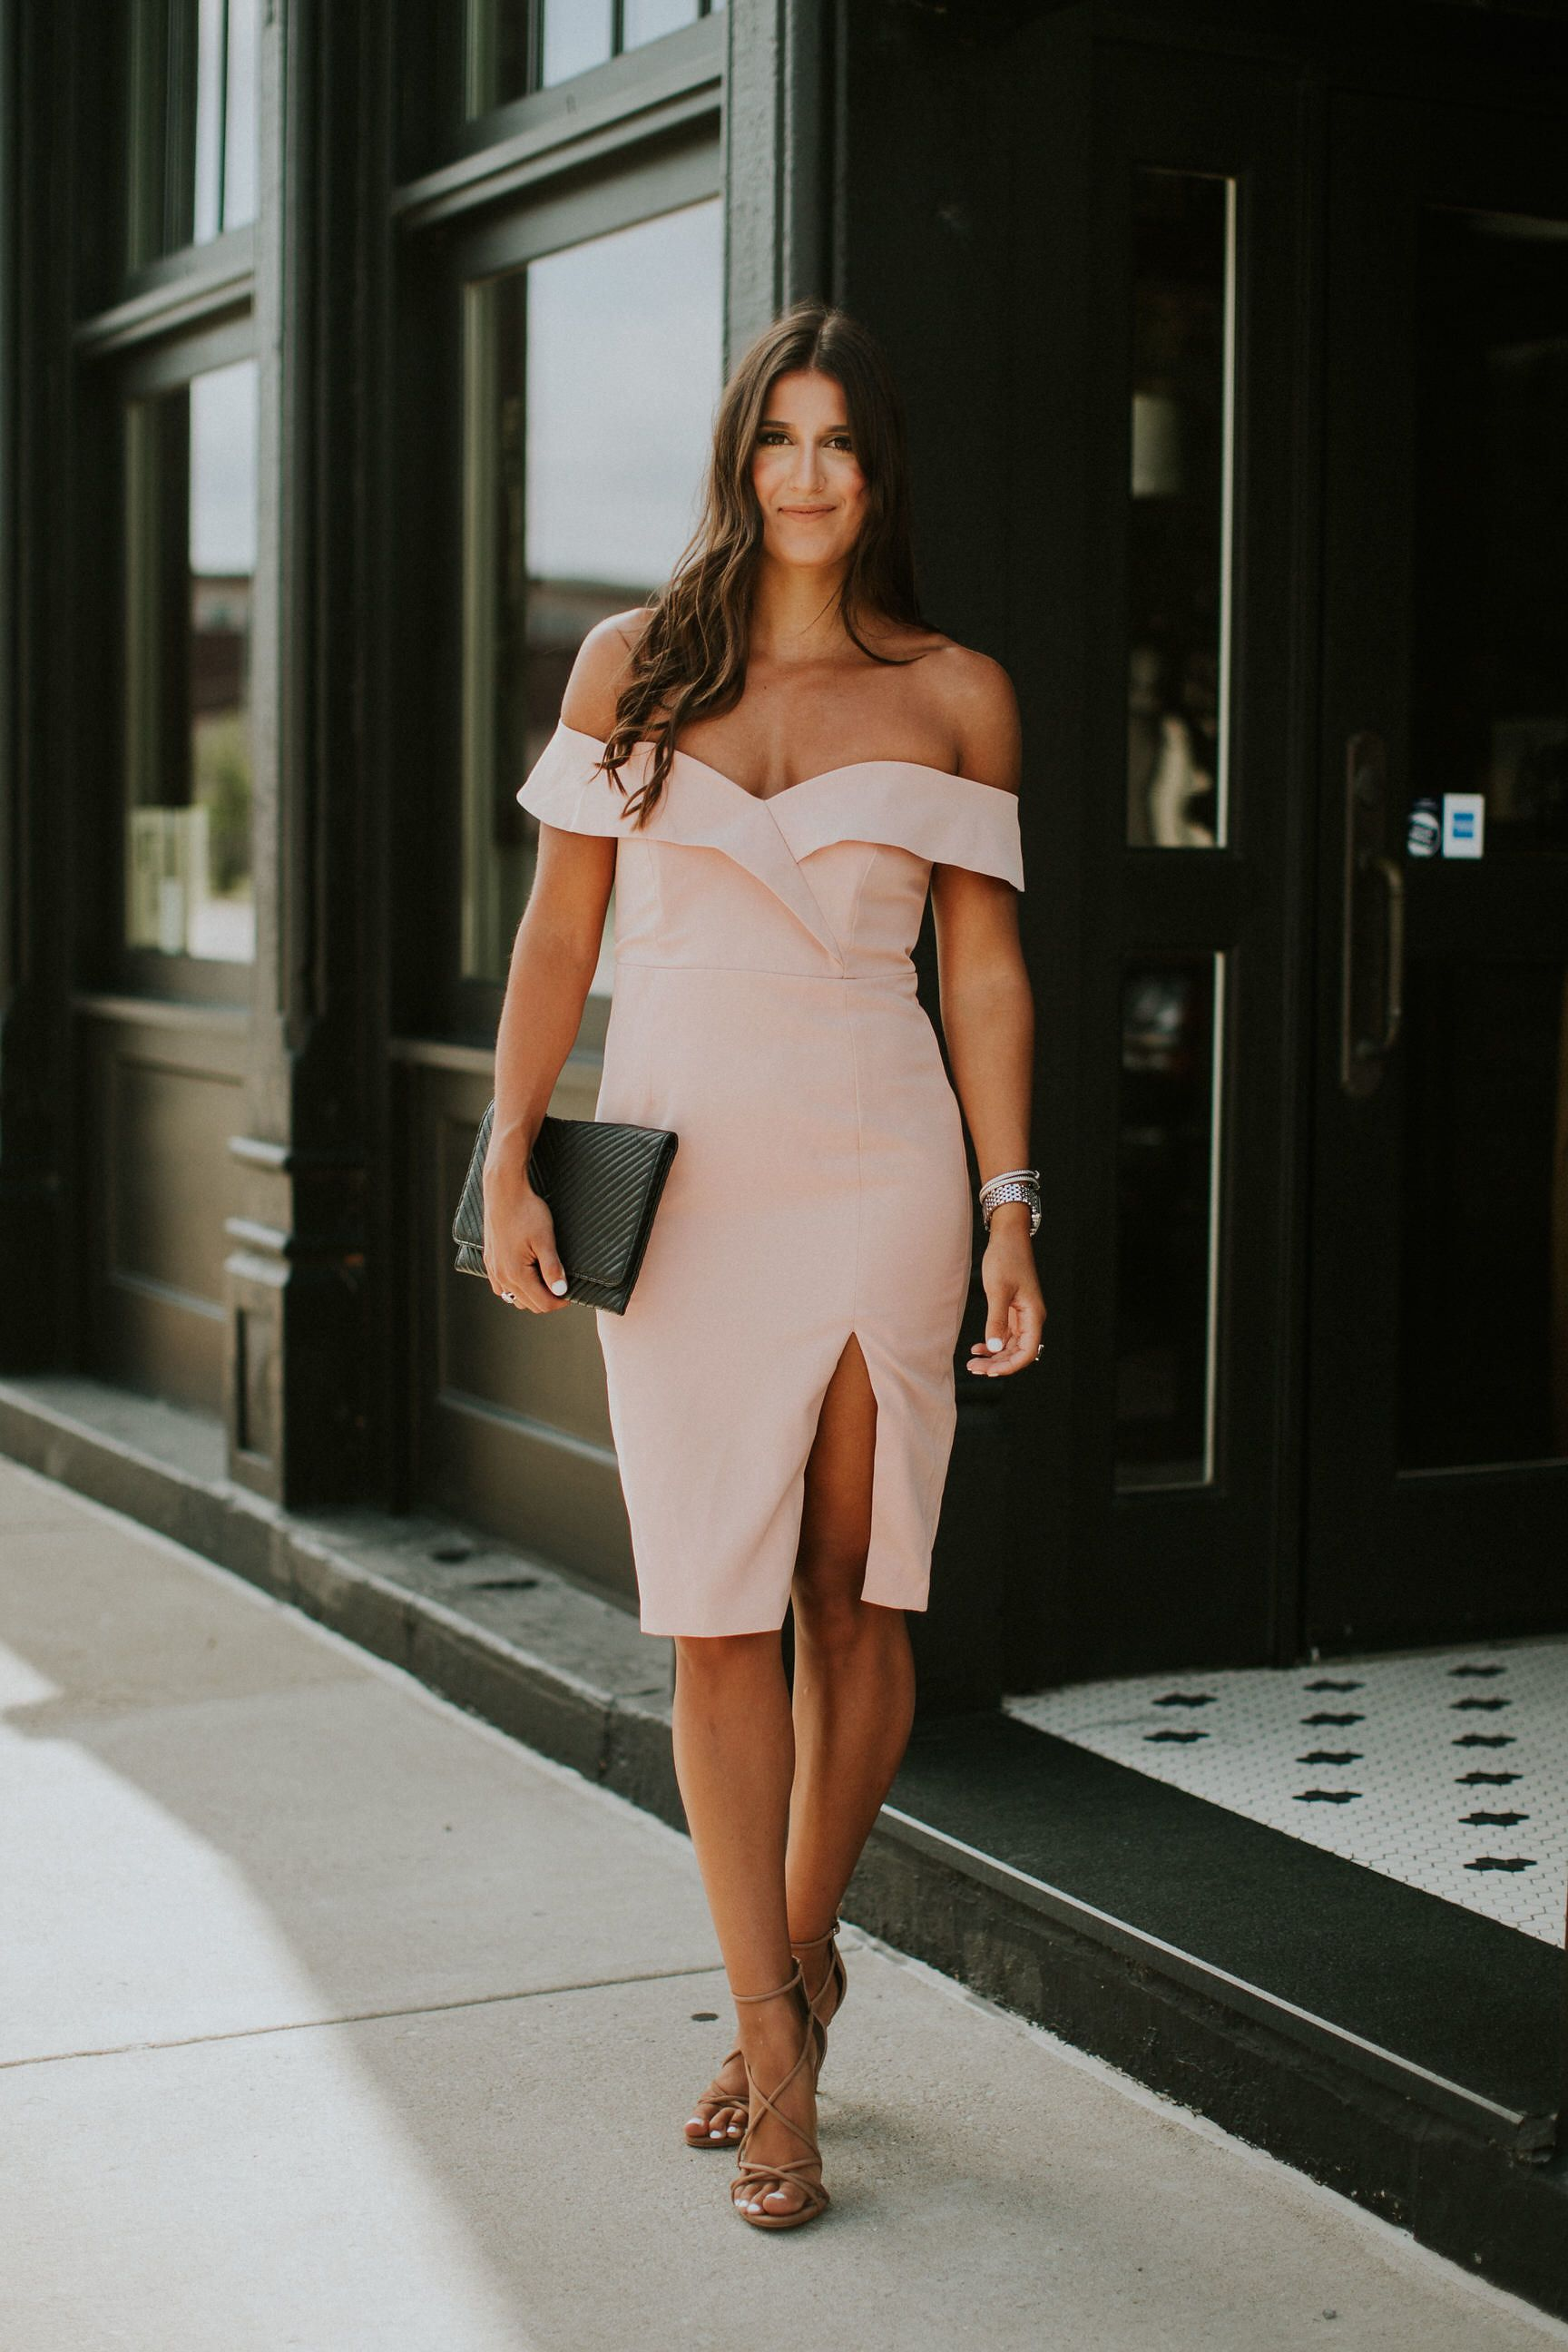 blush cocktail dress, wedding guest dresses, wedding cocktail attire, pink cocktail dresses, summer cocktail dresses, summer weddings // grace wainwright a southern drawl